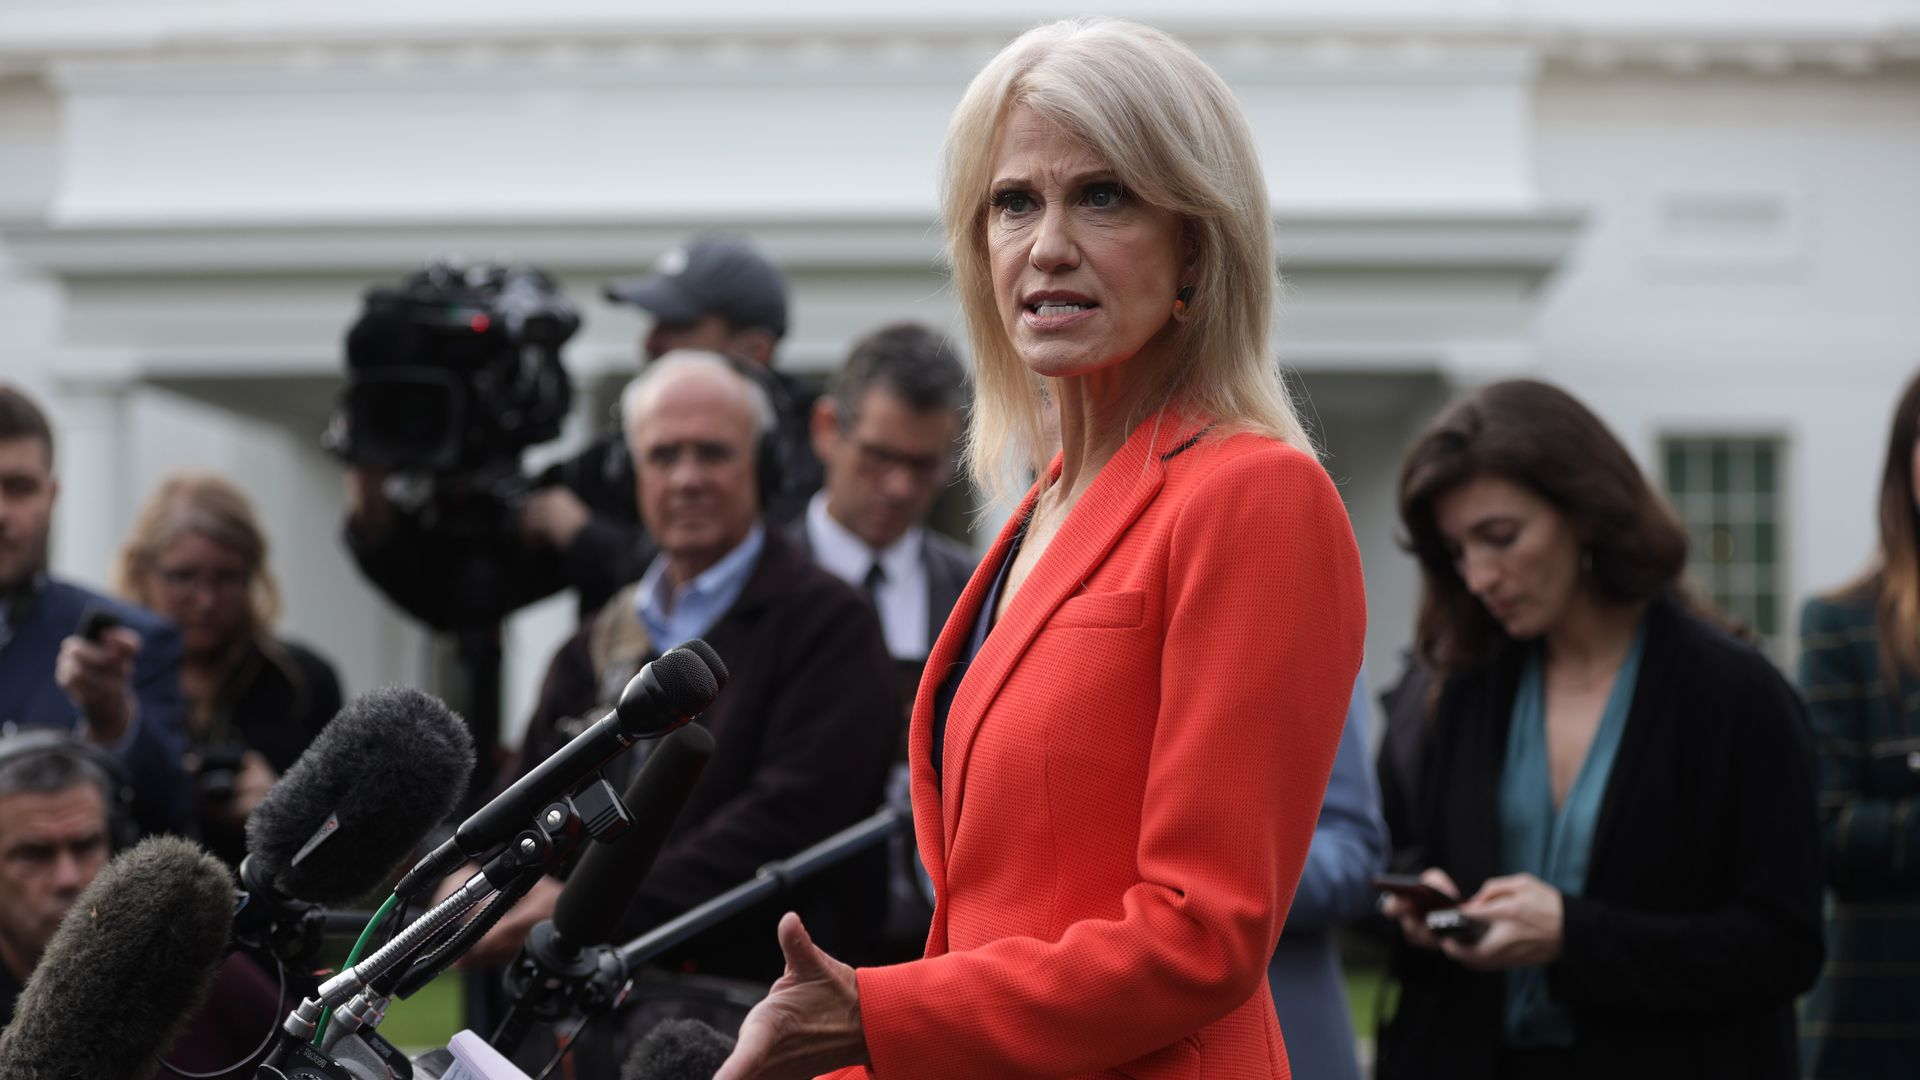 White House senior counselor Kellyanne Conway speaks to members of the media outside the West Wing of the White House October 25, 2019 in Washington, DC.